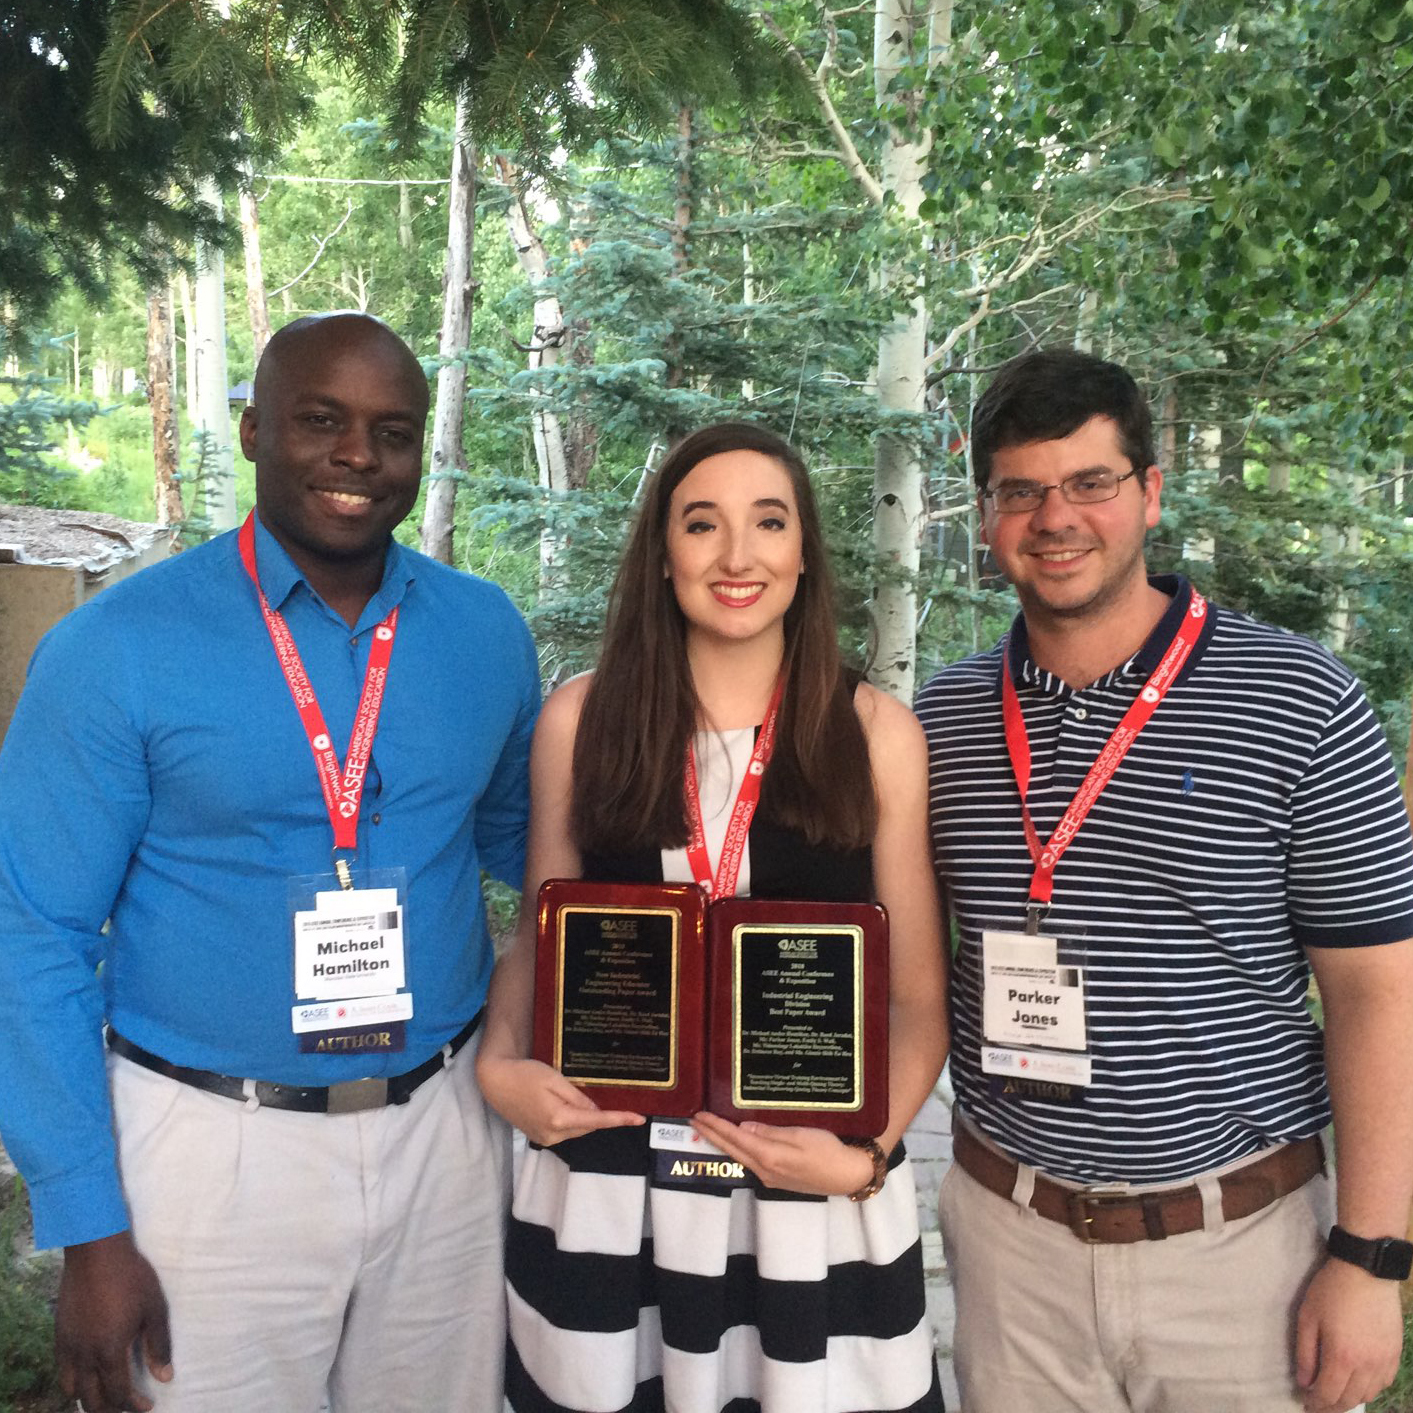 Mississippi State academic paper takes home three awards at national conference